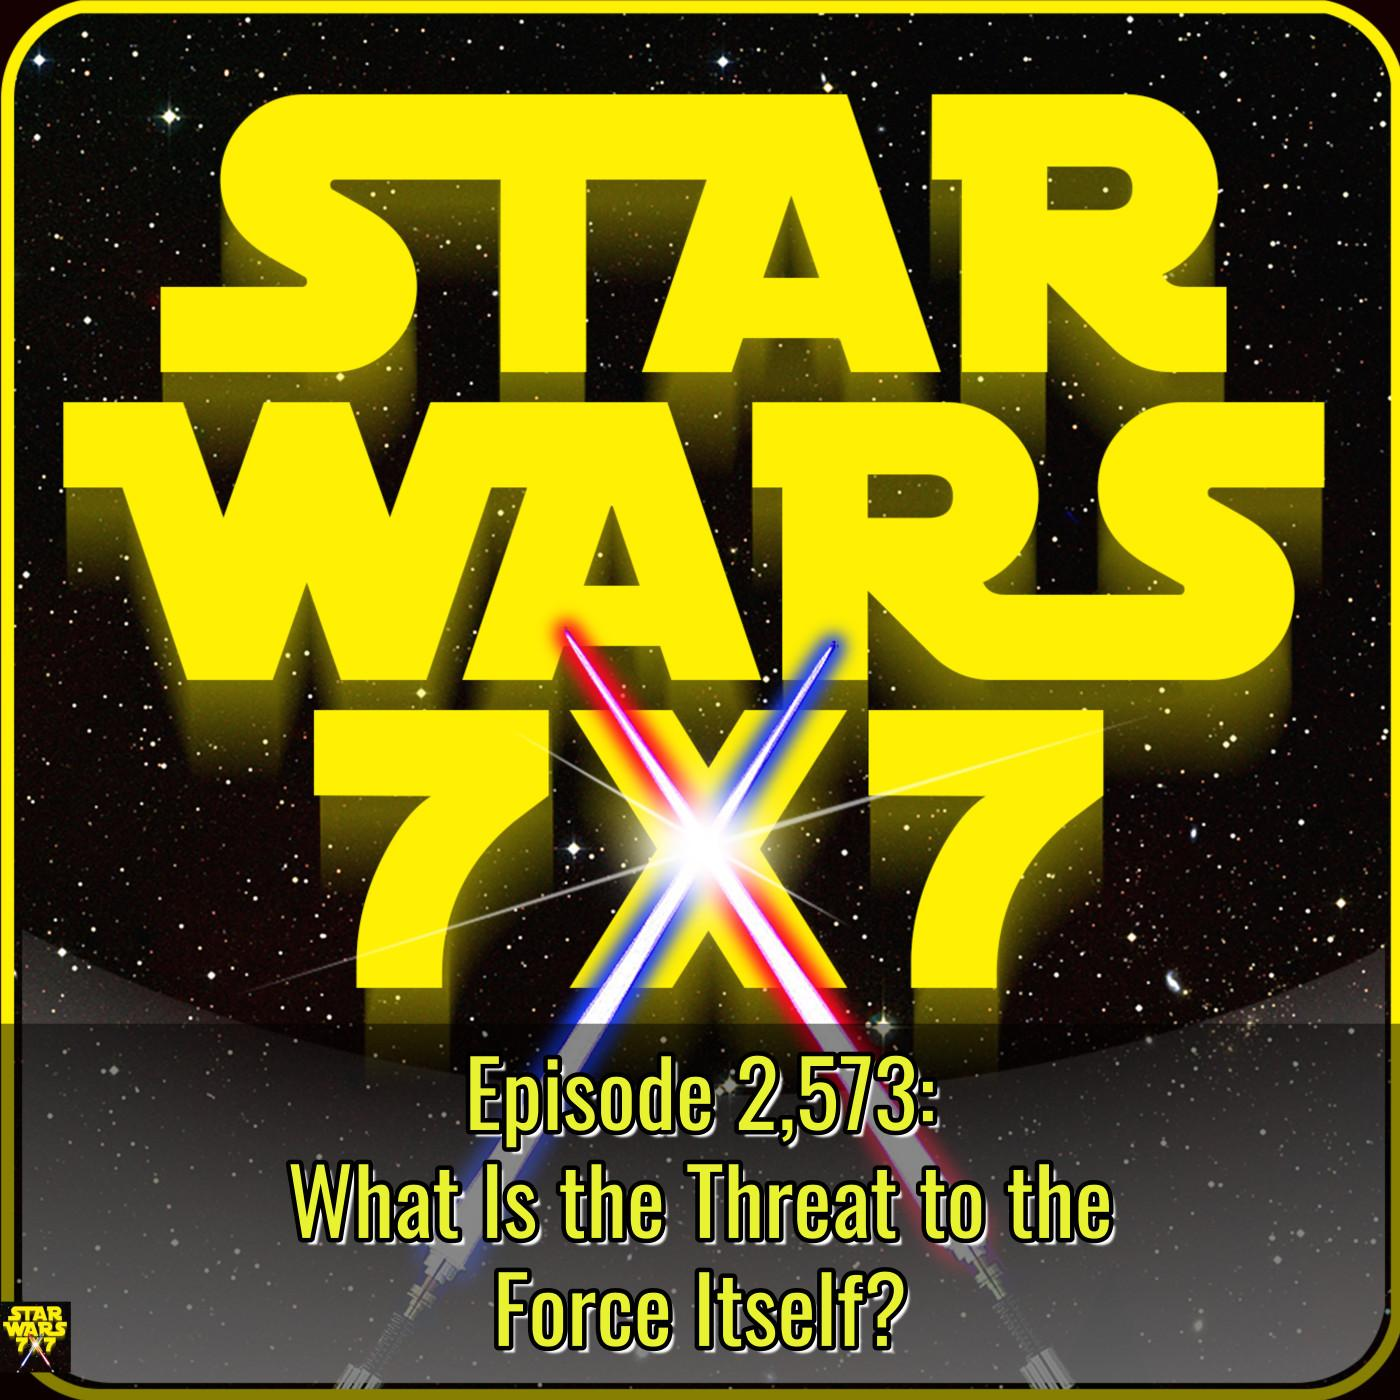 2,573. What Is the Threat to the Force Itself?